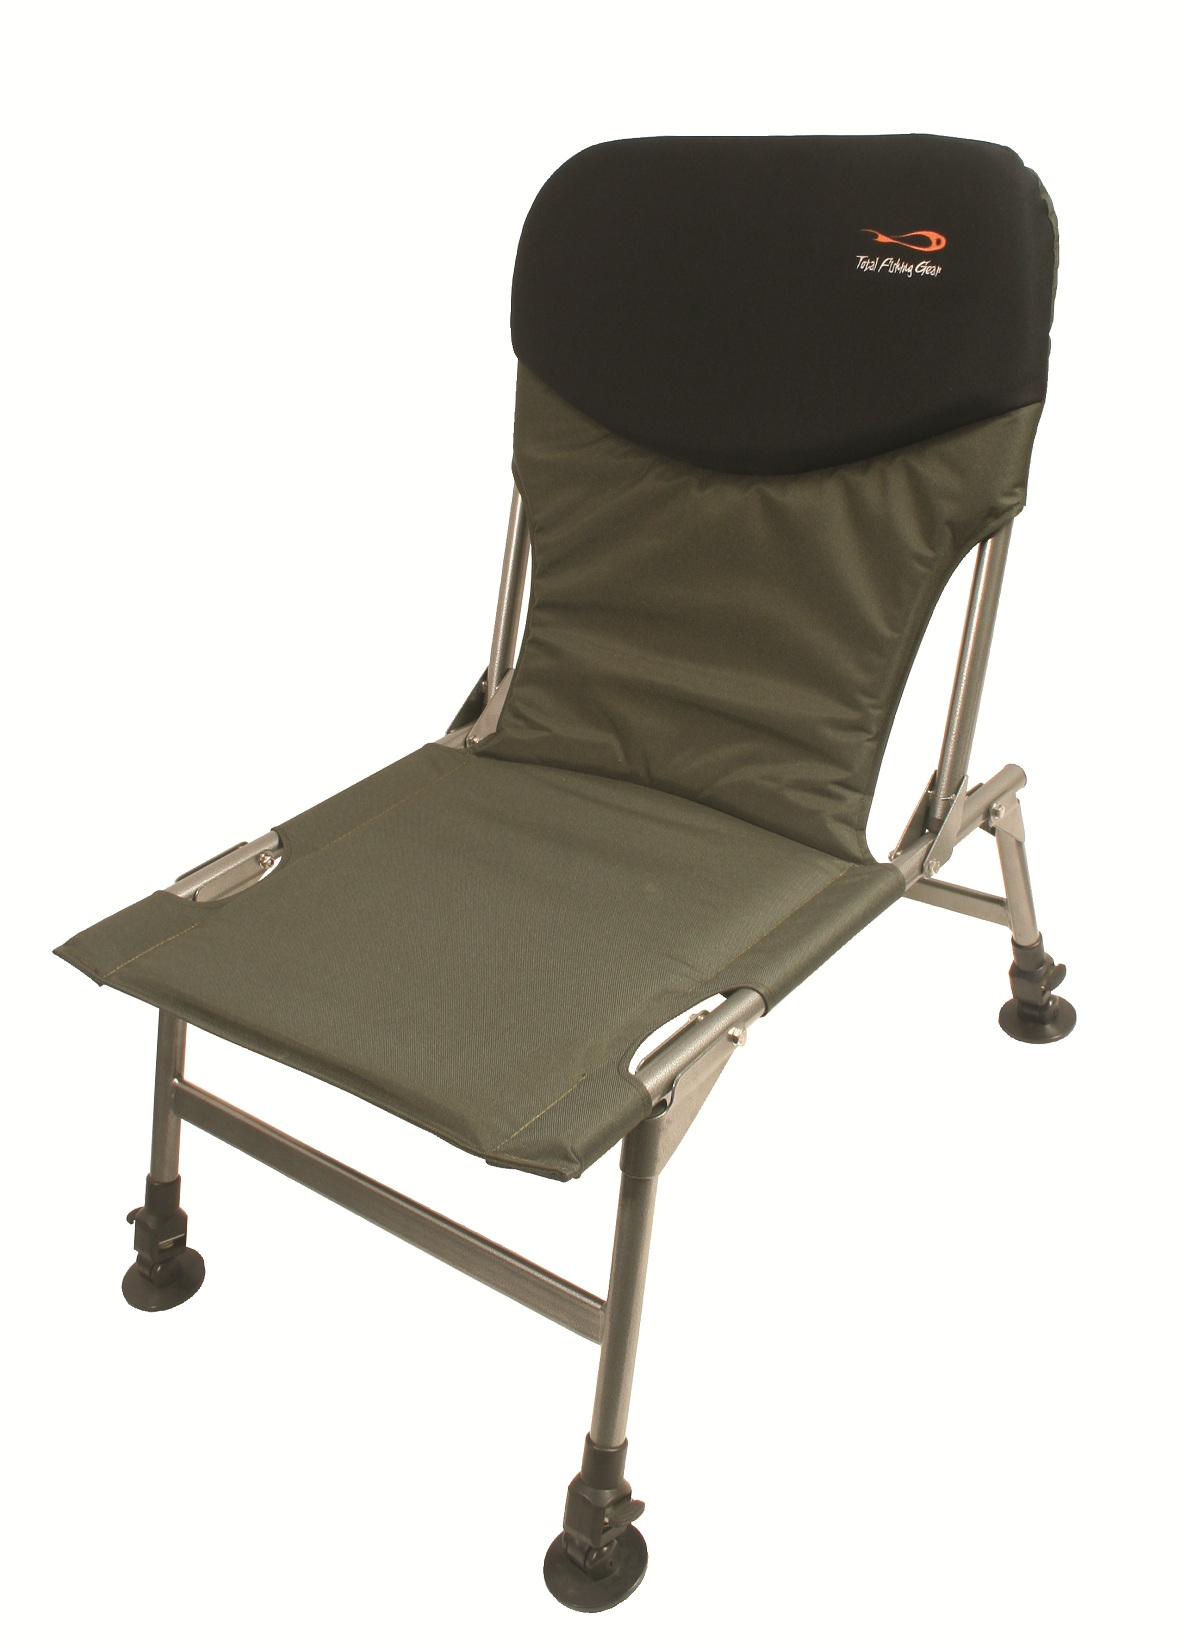 korda chair accessories where to buy gaming chairs tf gear chill out  glasgow angling centre